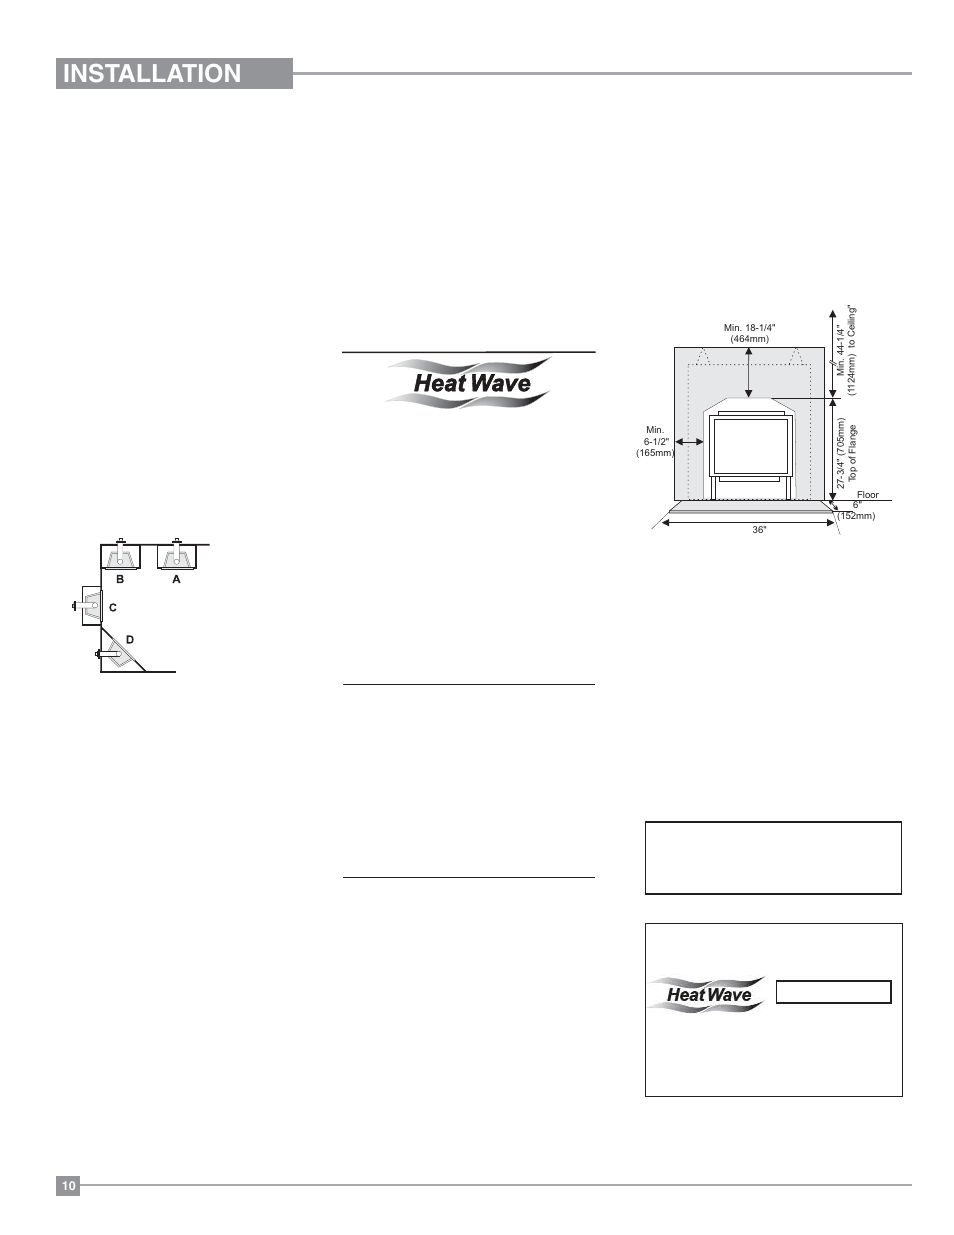 Installation Clearances Gas Fireplace Regency Excalibur P90 Wiring Diagram 2 Medium User Manual Page 10 56